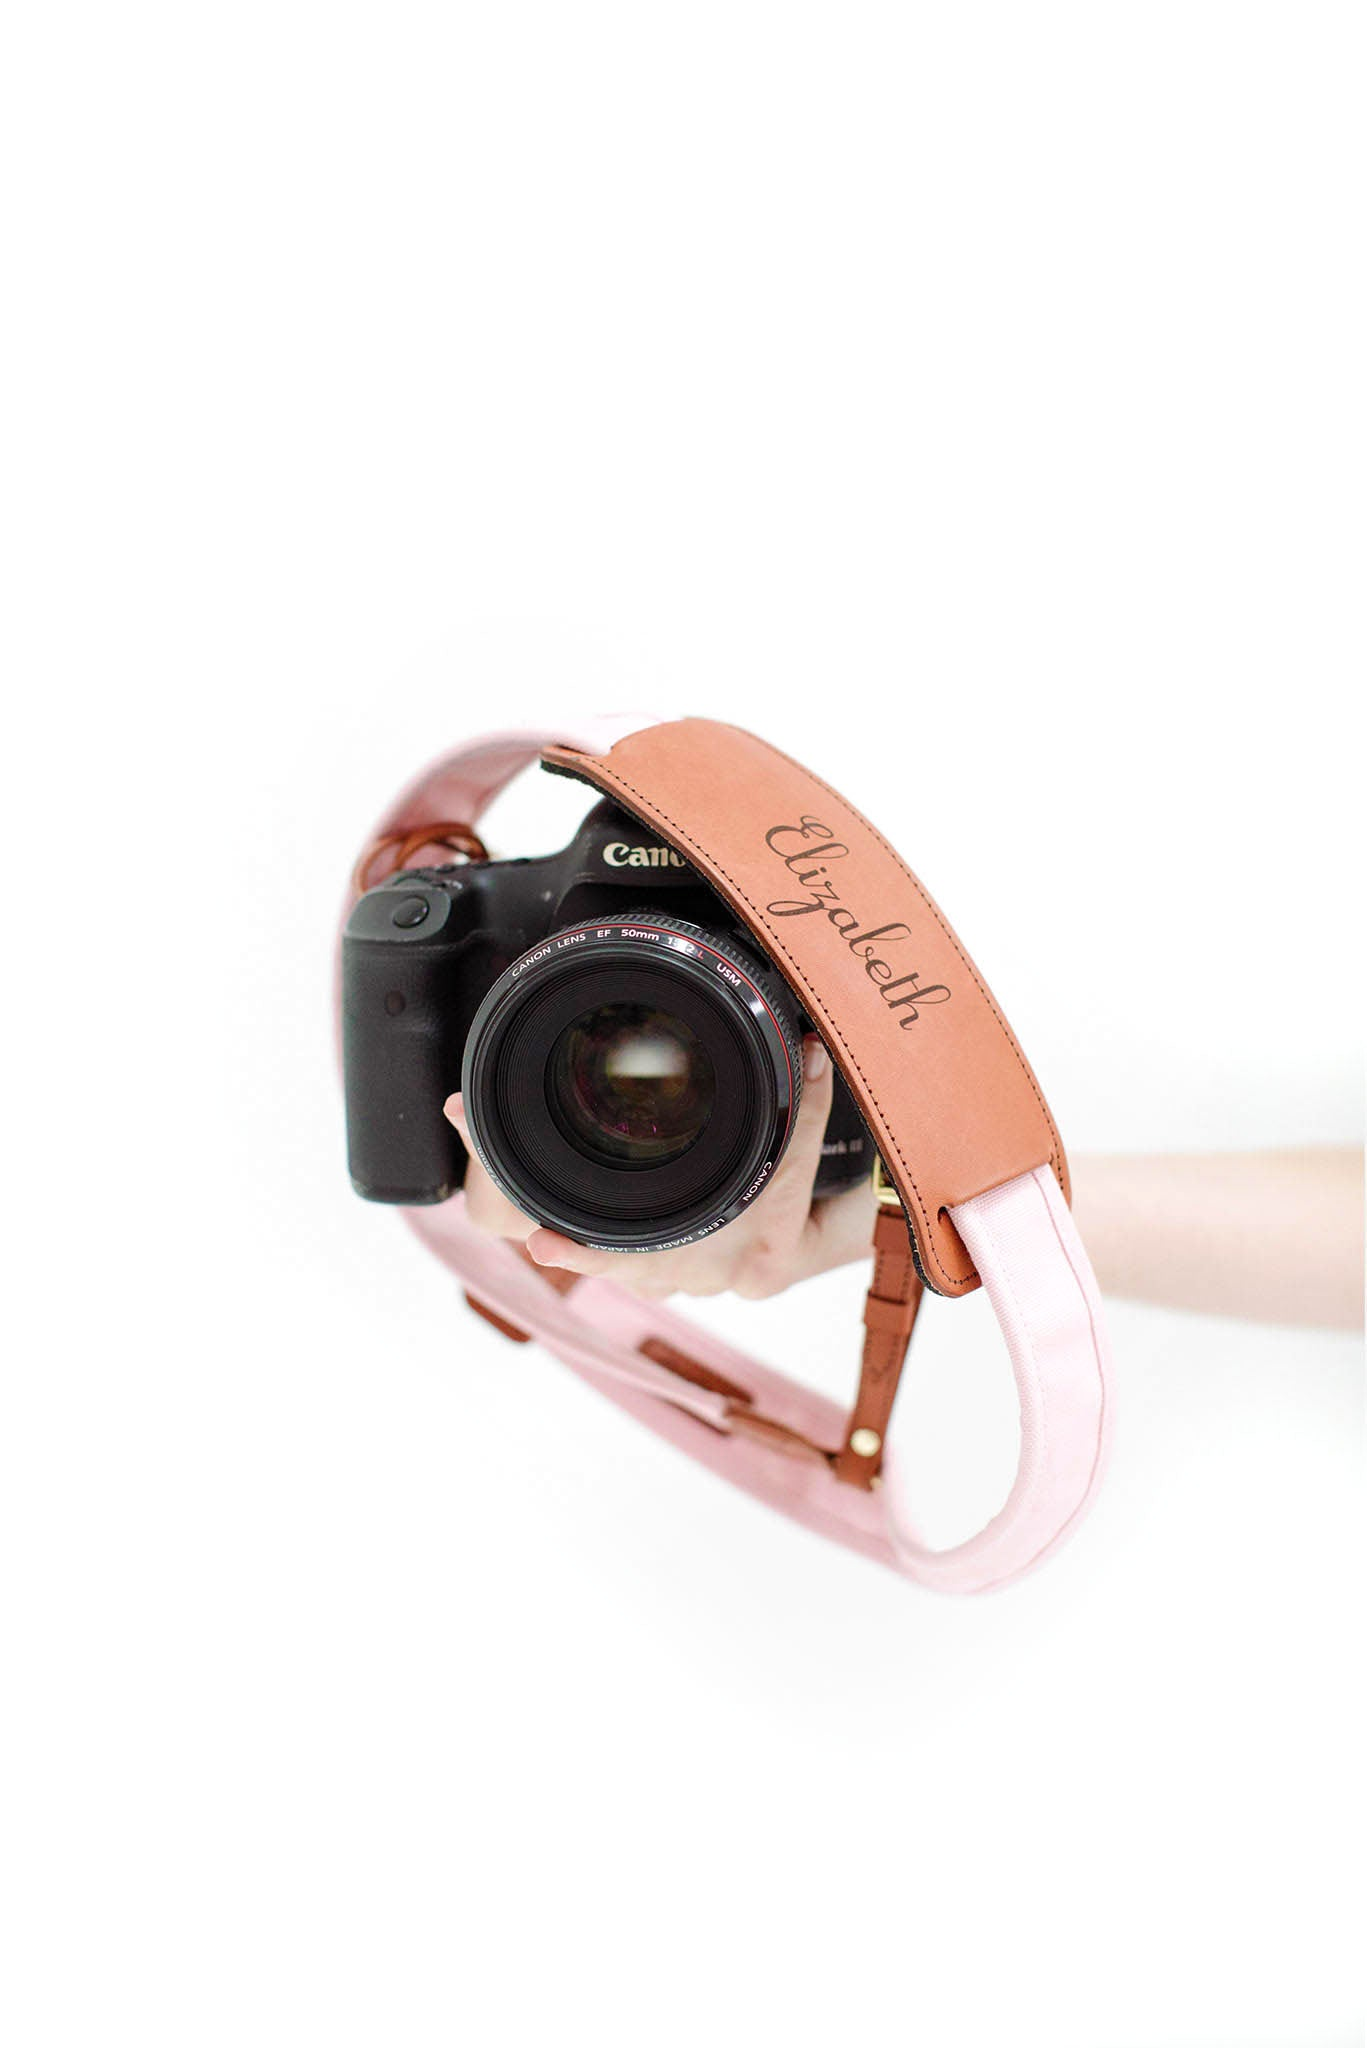 FOTO | Blush Fotostrap - a pink canvas and genuine leather camera strap that can be personalized with a monogram or business logo, making it the perfect personalized gift!